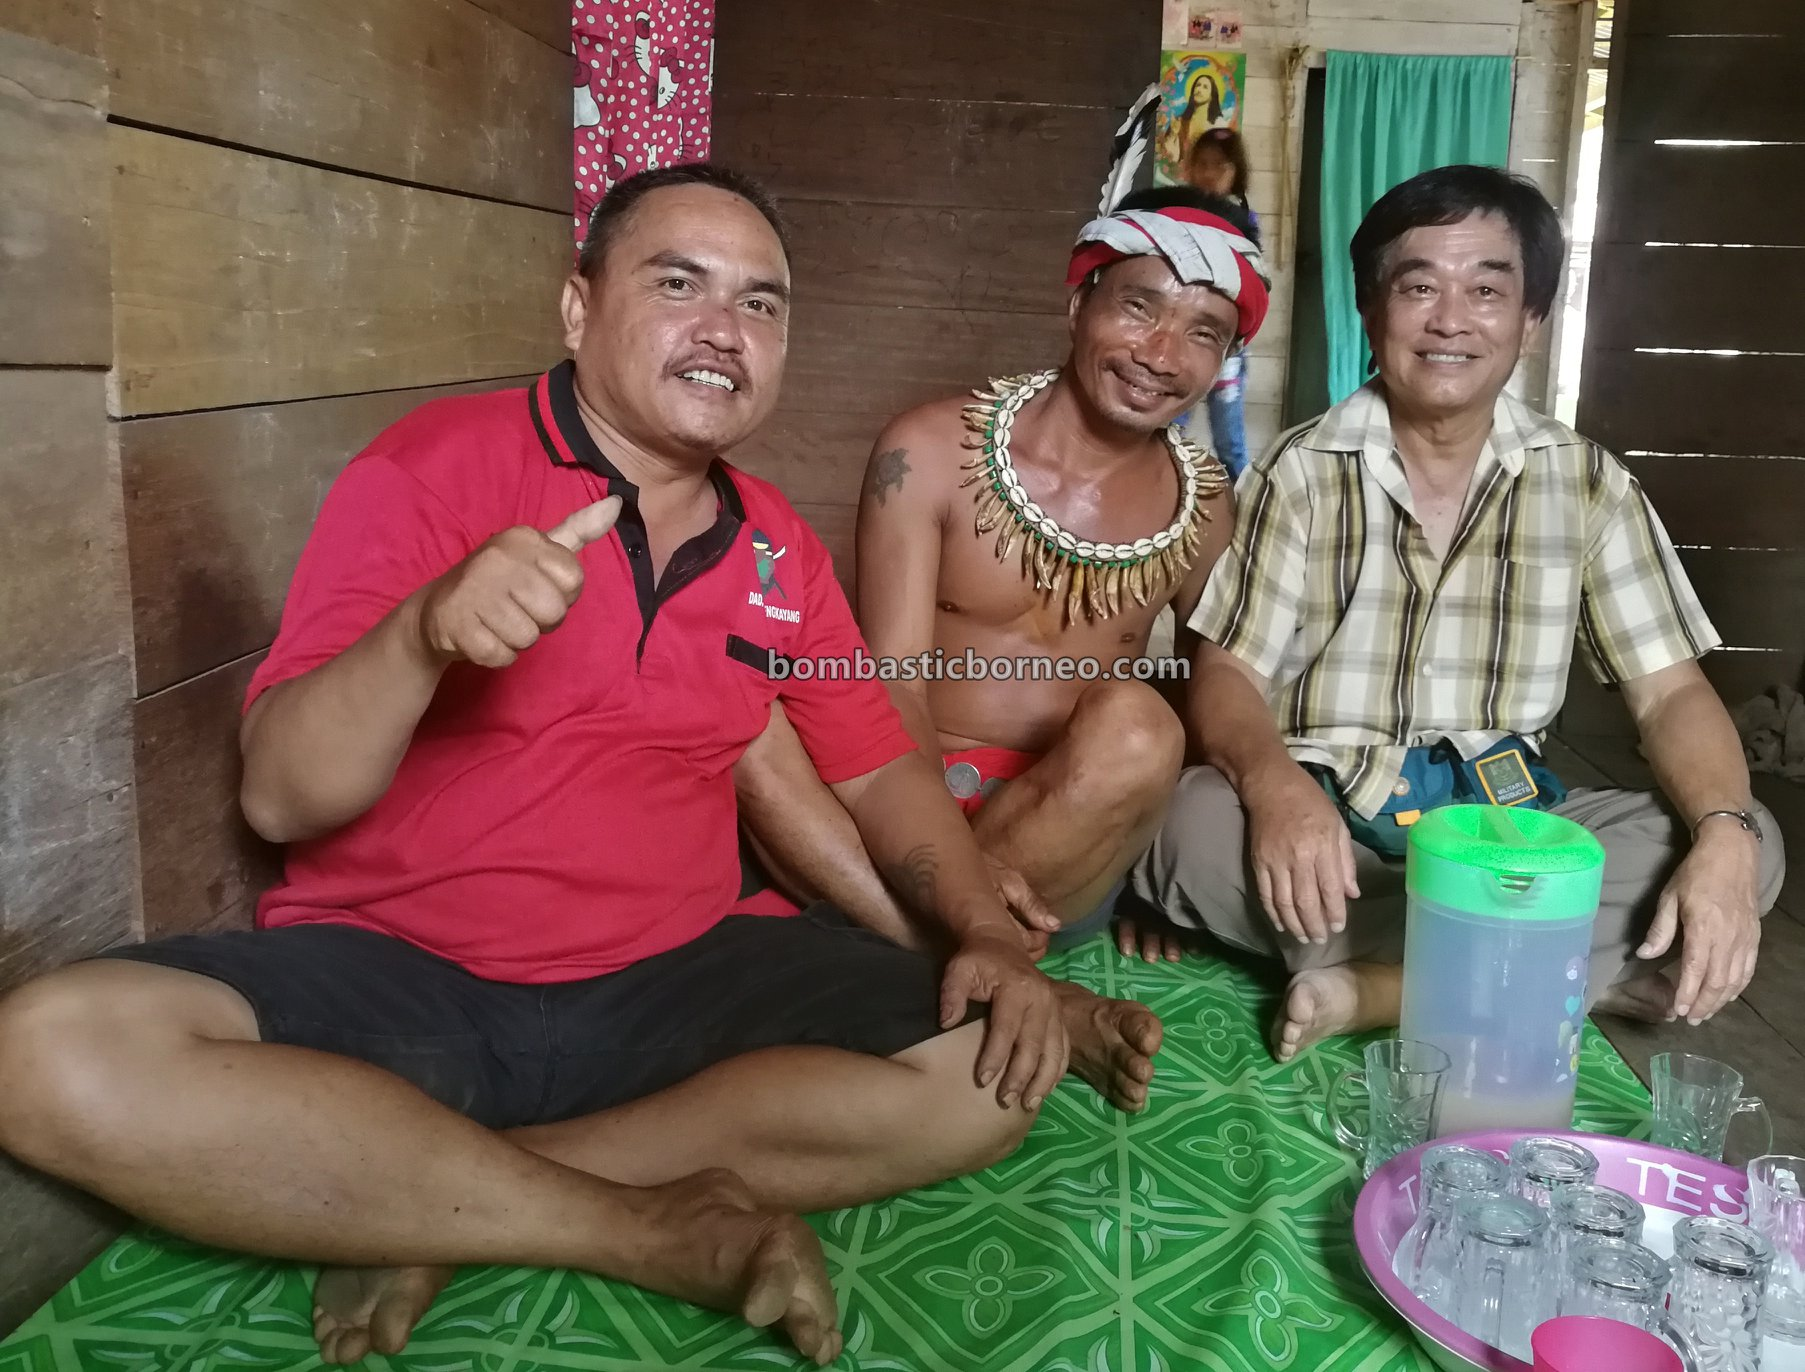 Gawai Harvest Festival, village, backpackers, budaya, Indonesia, Desa Sahan, Seluas, Native, Ethnic, Tourism, objek wisata, travel guide, Trans Borneo, 印尼西加里曼丹, 婆罗洲达雅丰收节